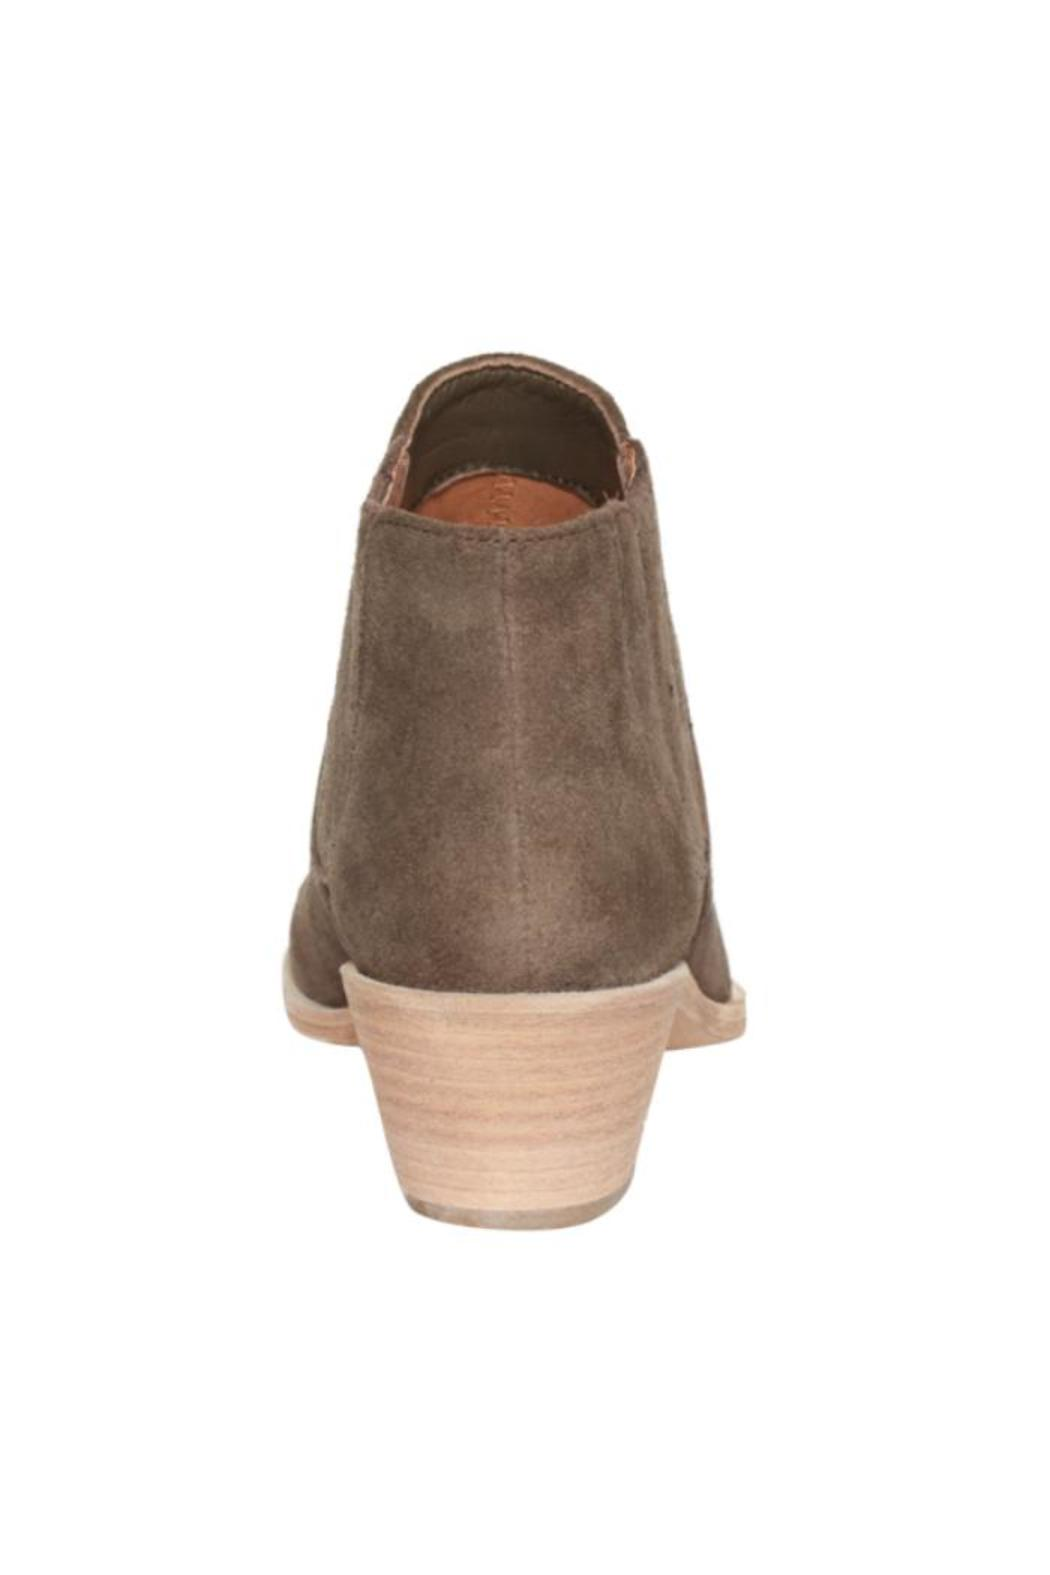 Joie Barlow Charcoal Booties - Side Cropped Image